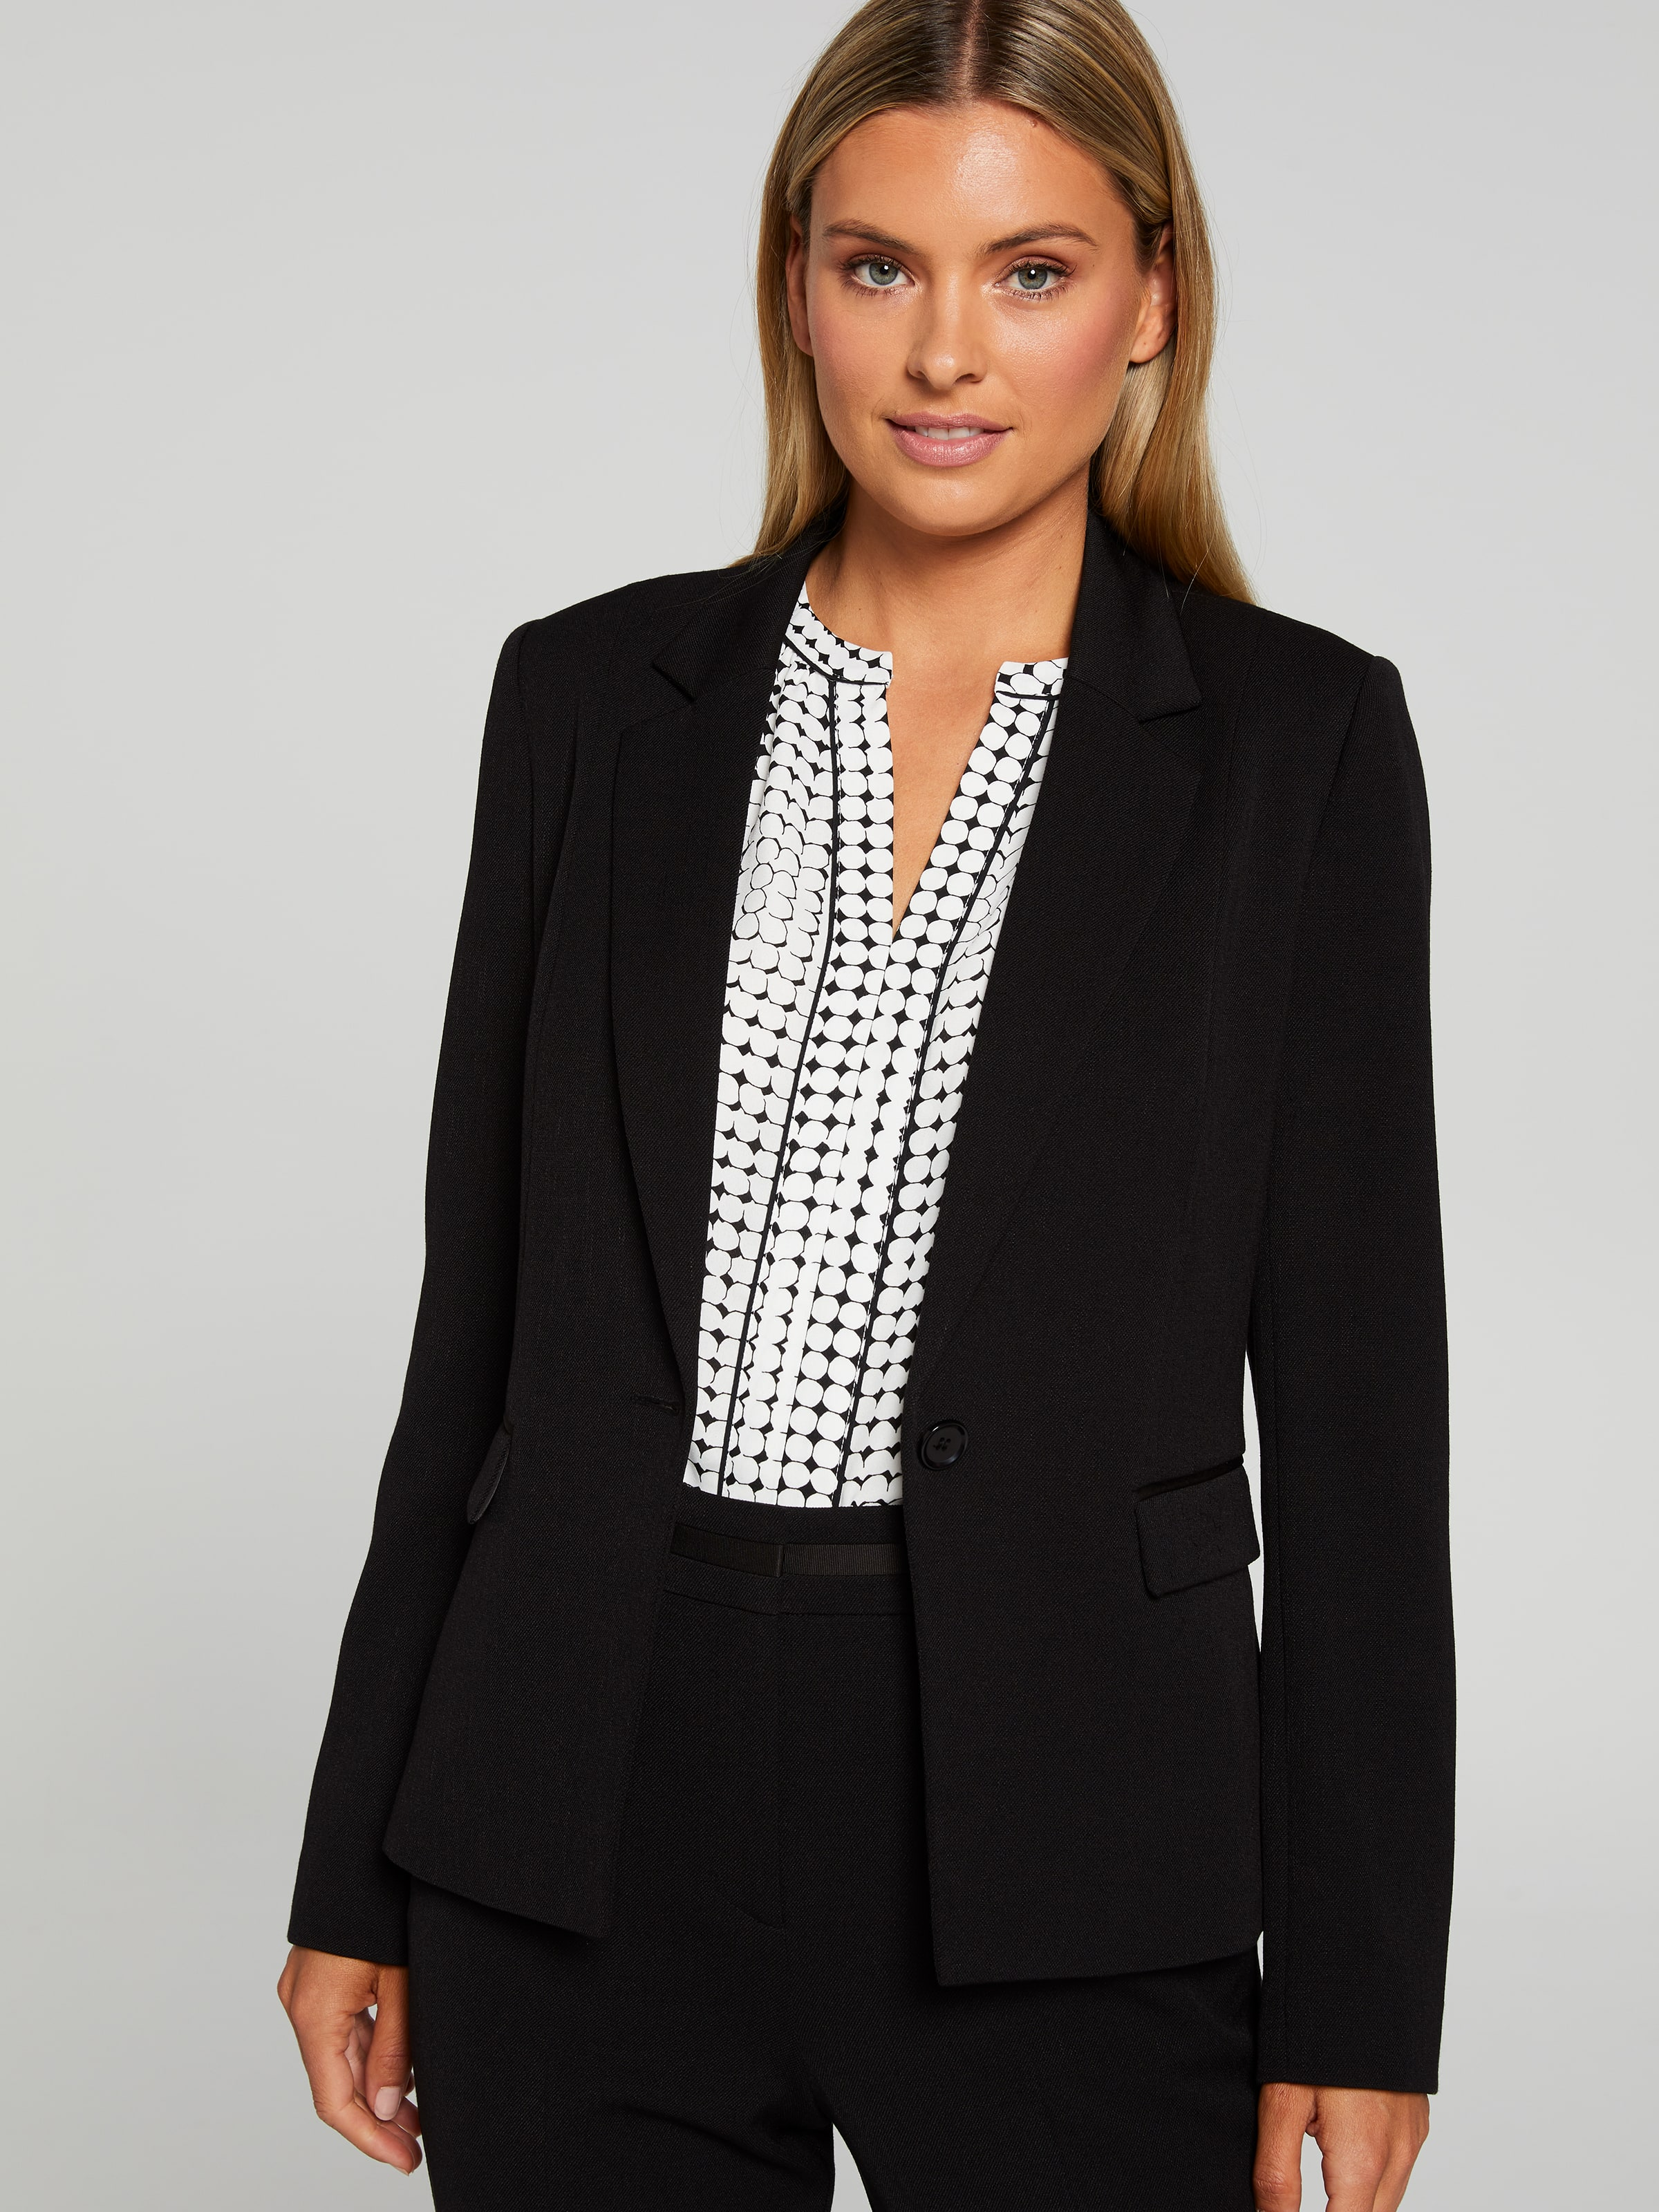 Womens Business Suits Australia Portmans Online